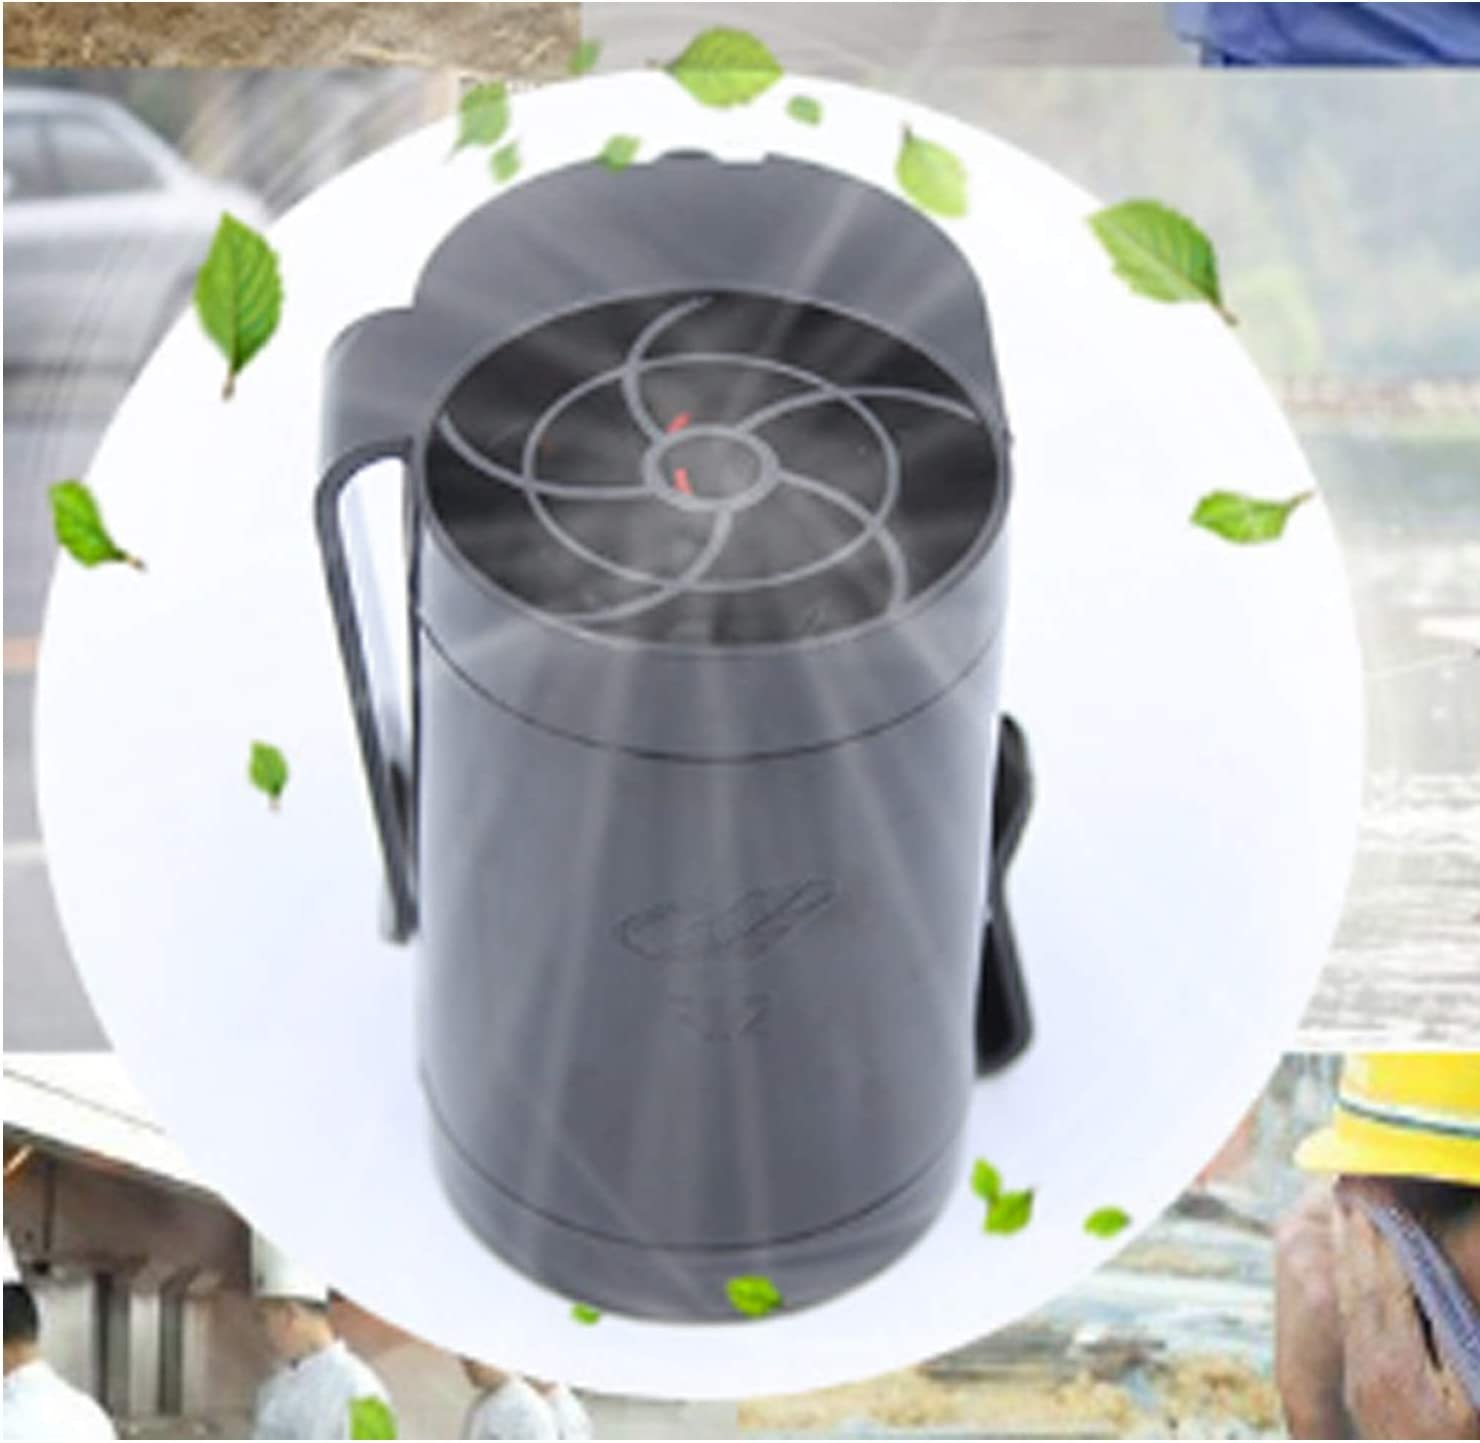 Air Cooling Fan Hanging Waist Outdoor Fan USB Charging Small Fan Portable Mini Large Wind Lithium Battery Personal Fans Color : Black